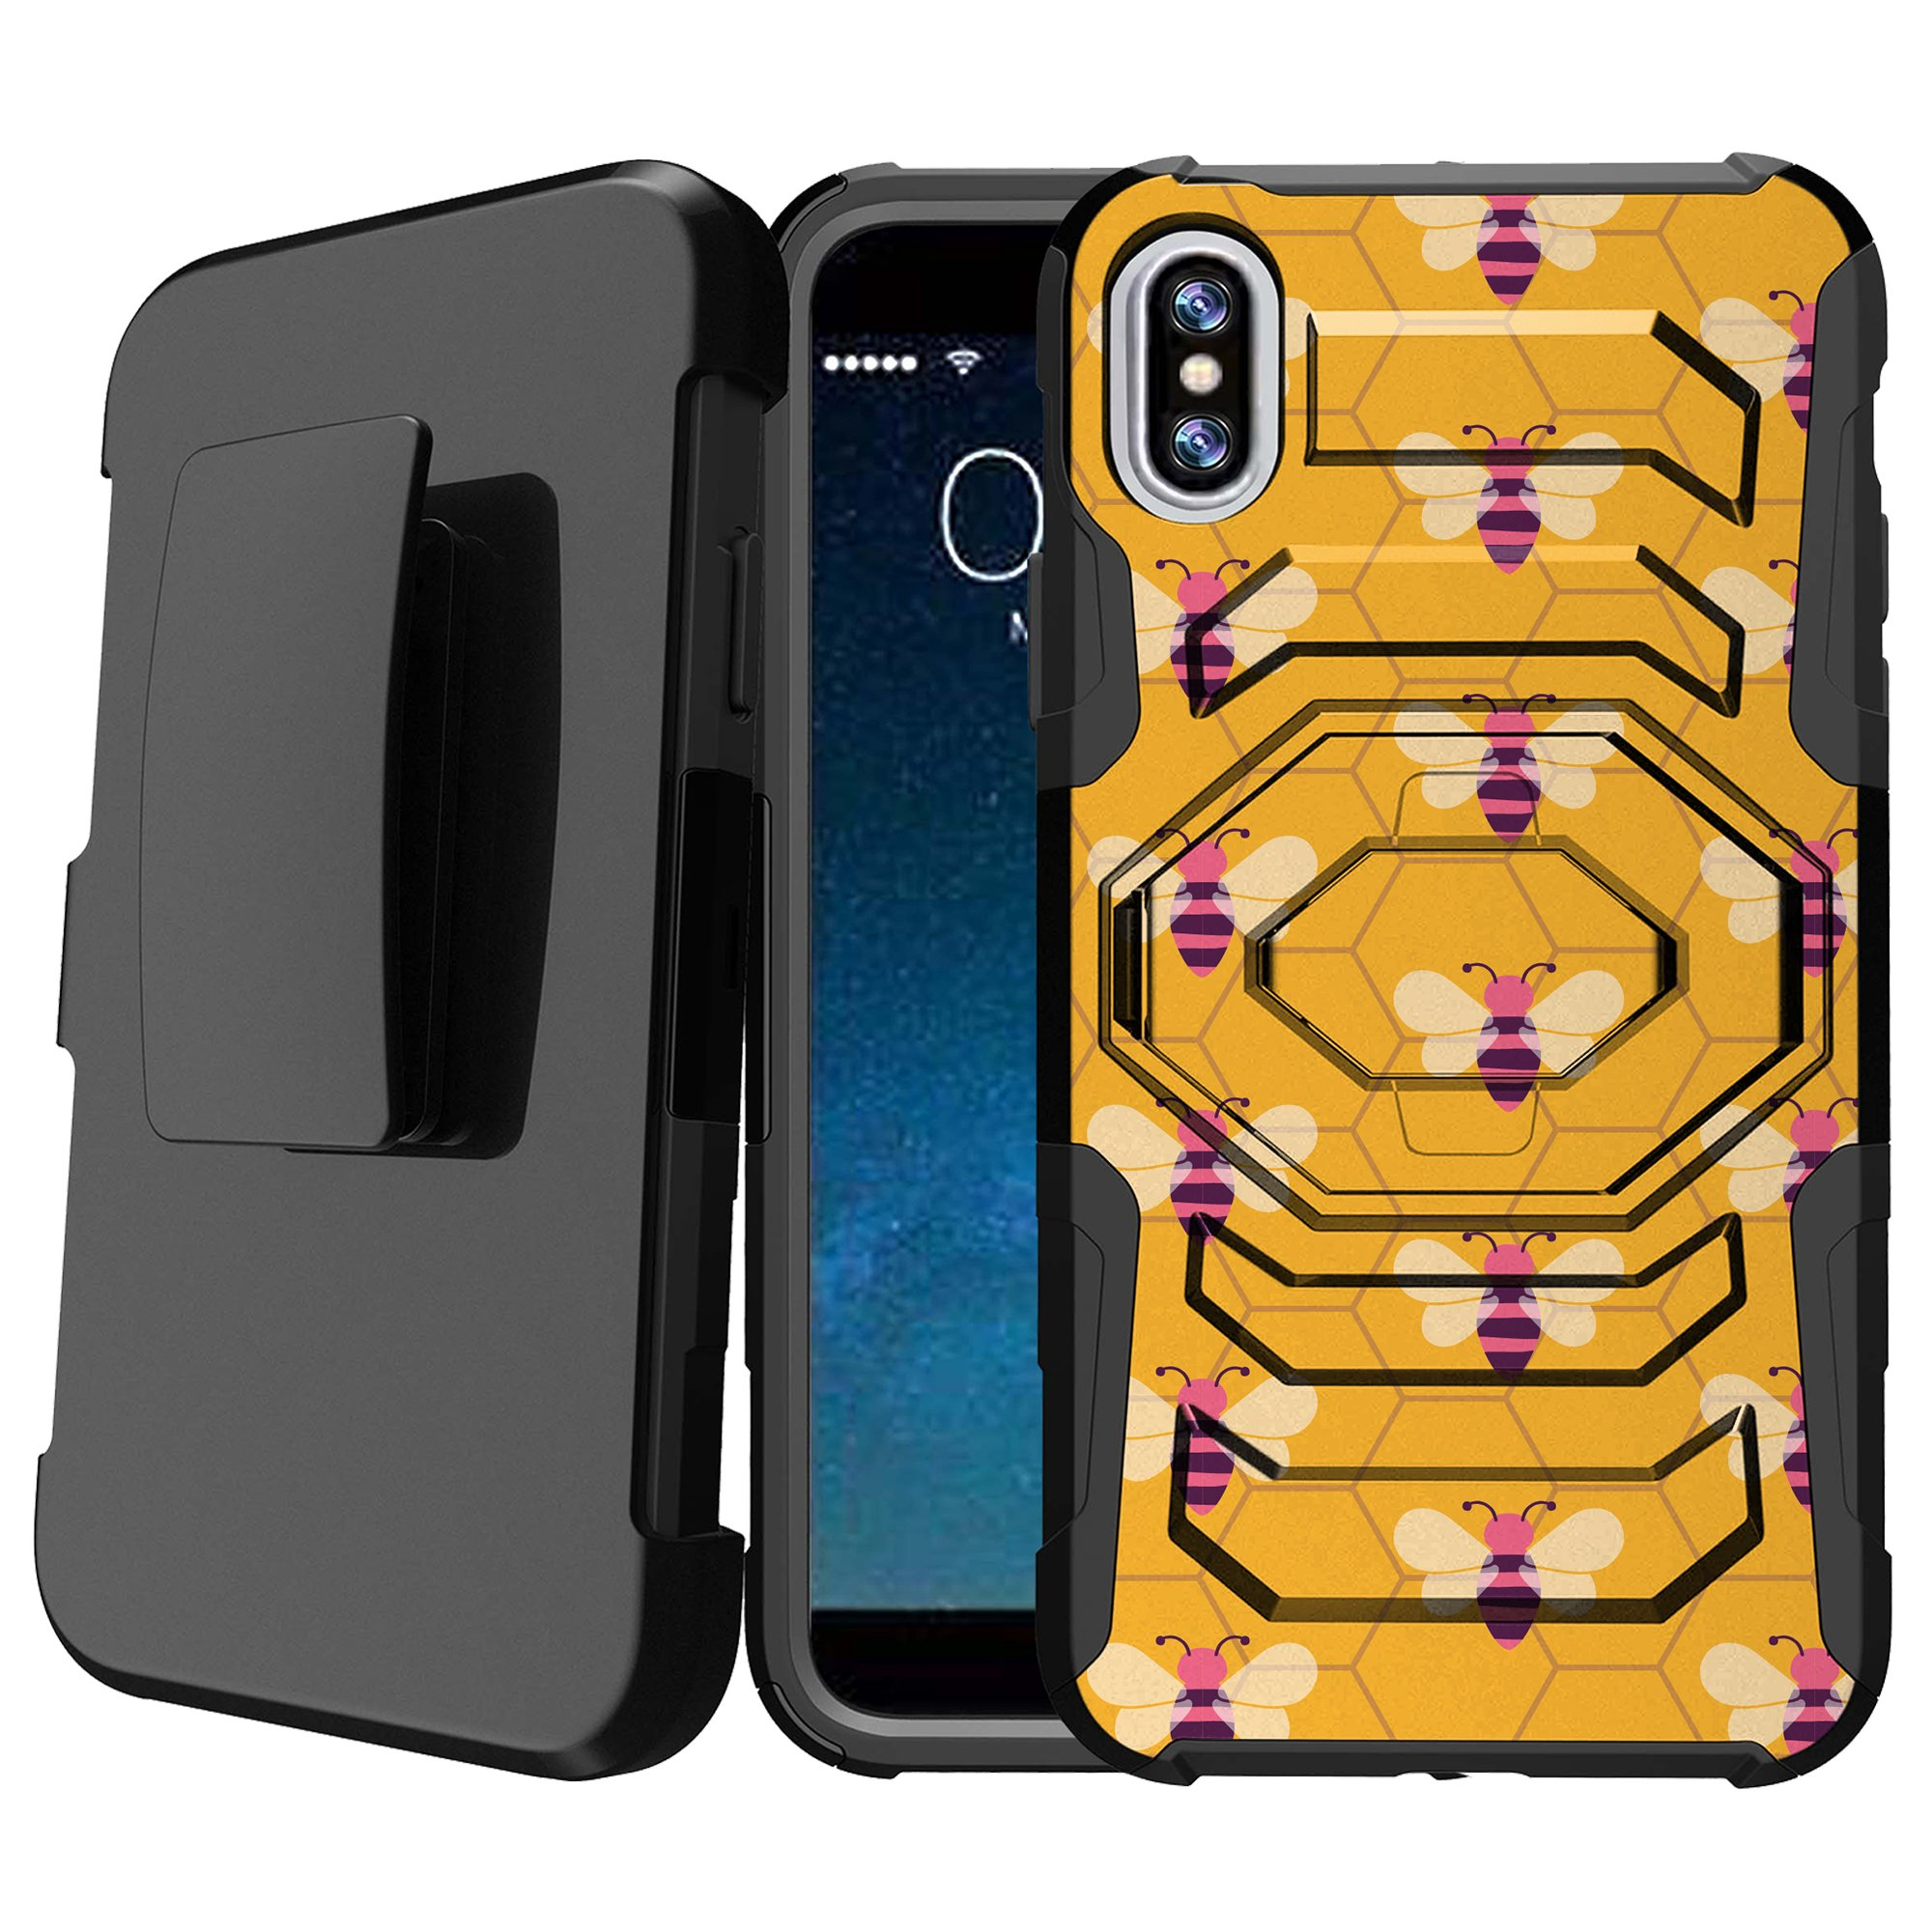 iPhone X Shock-Resistant Case [Armor Reloaded][Anti-Scratch] Rugged Holster and Locking Kickstand Case for iPhone X [Hard Shell iPhone X Case] - Honeycomb Bees